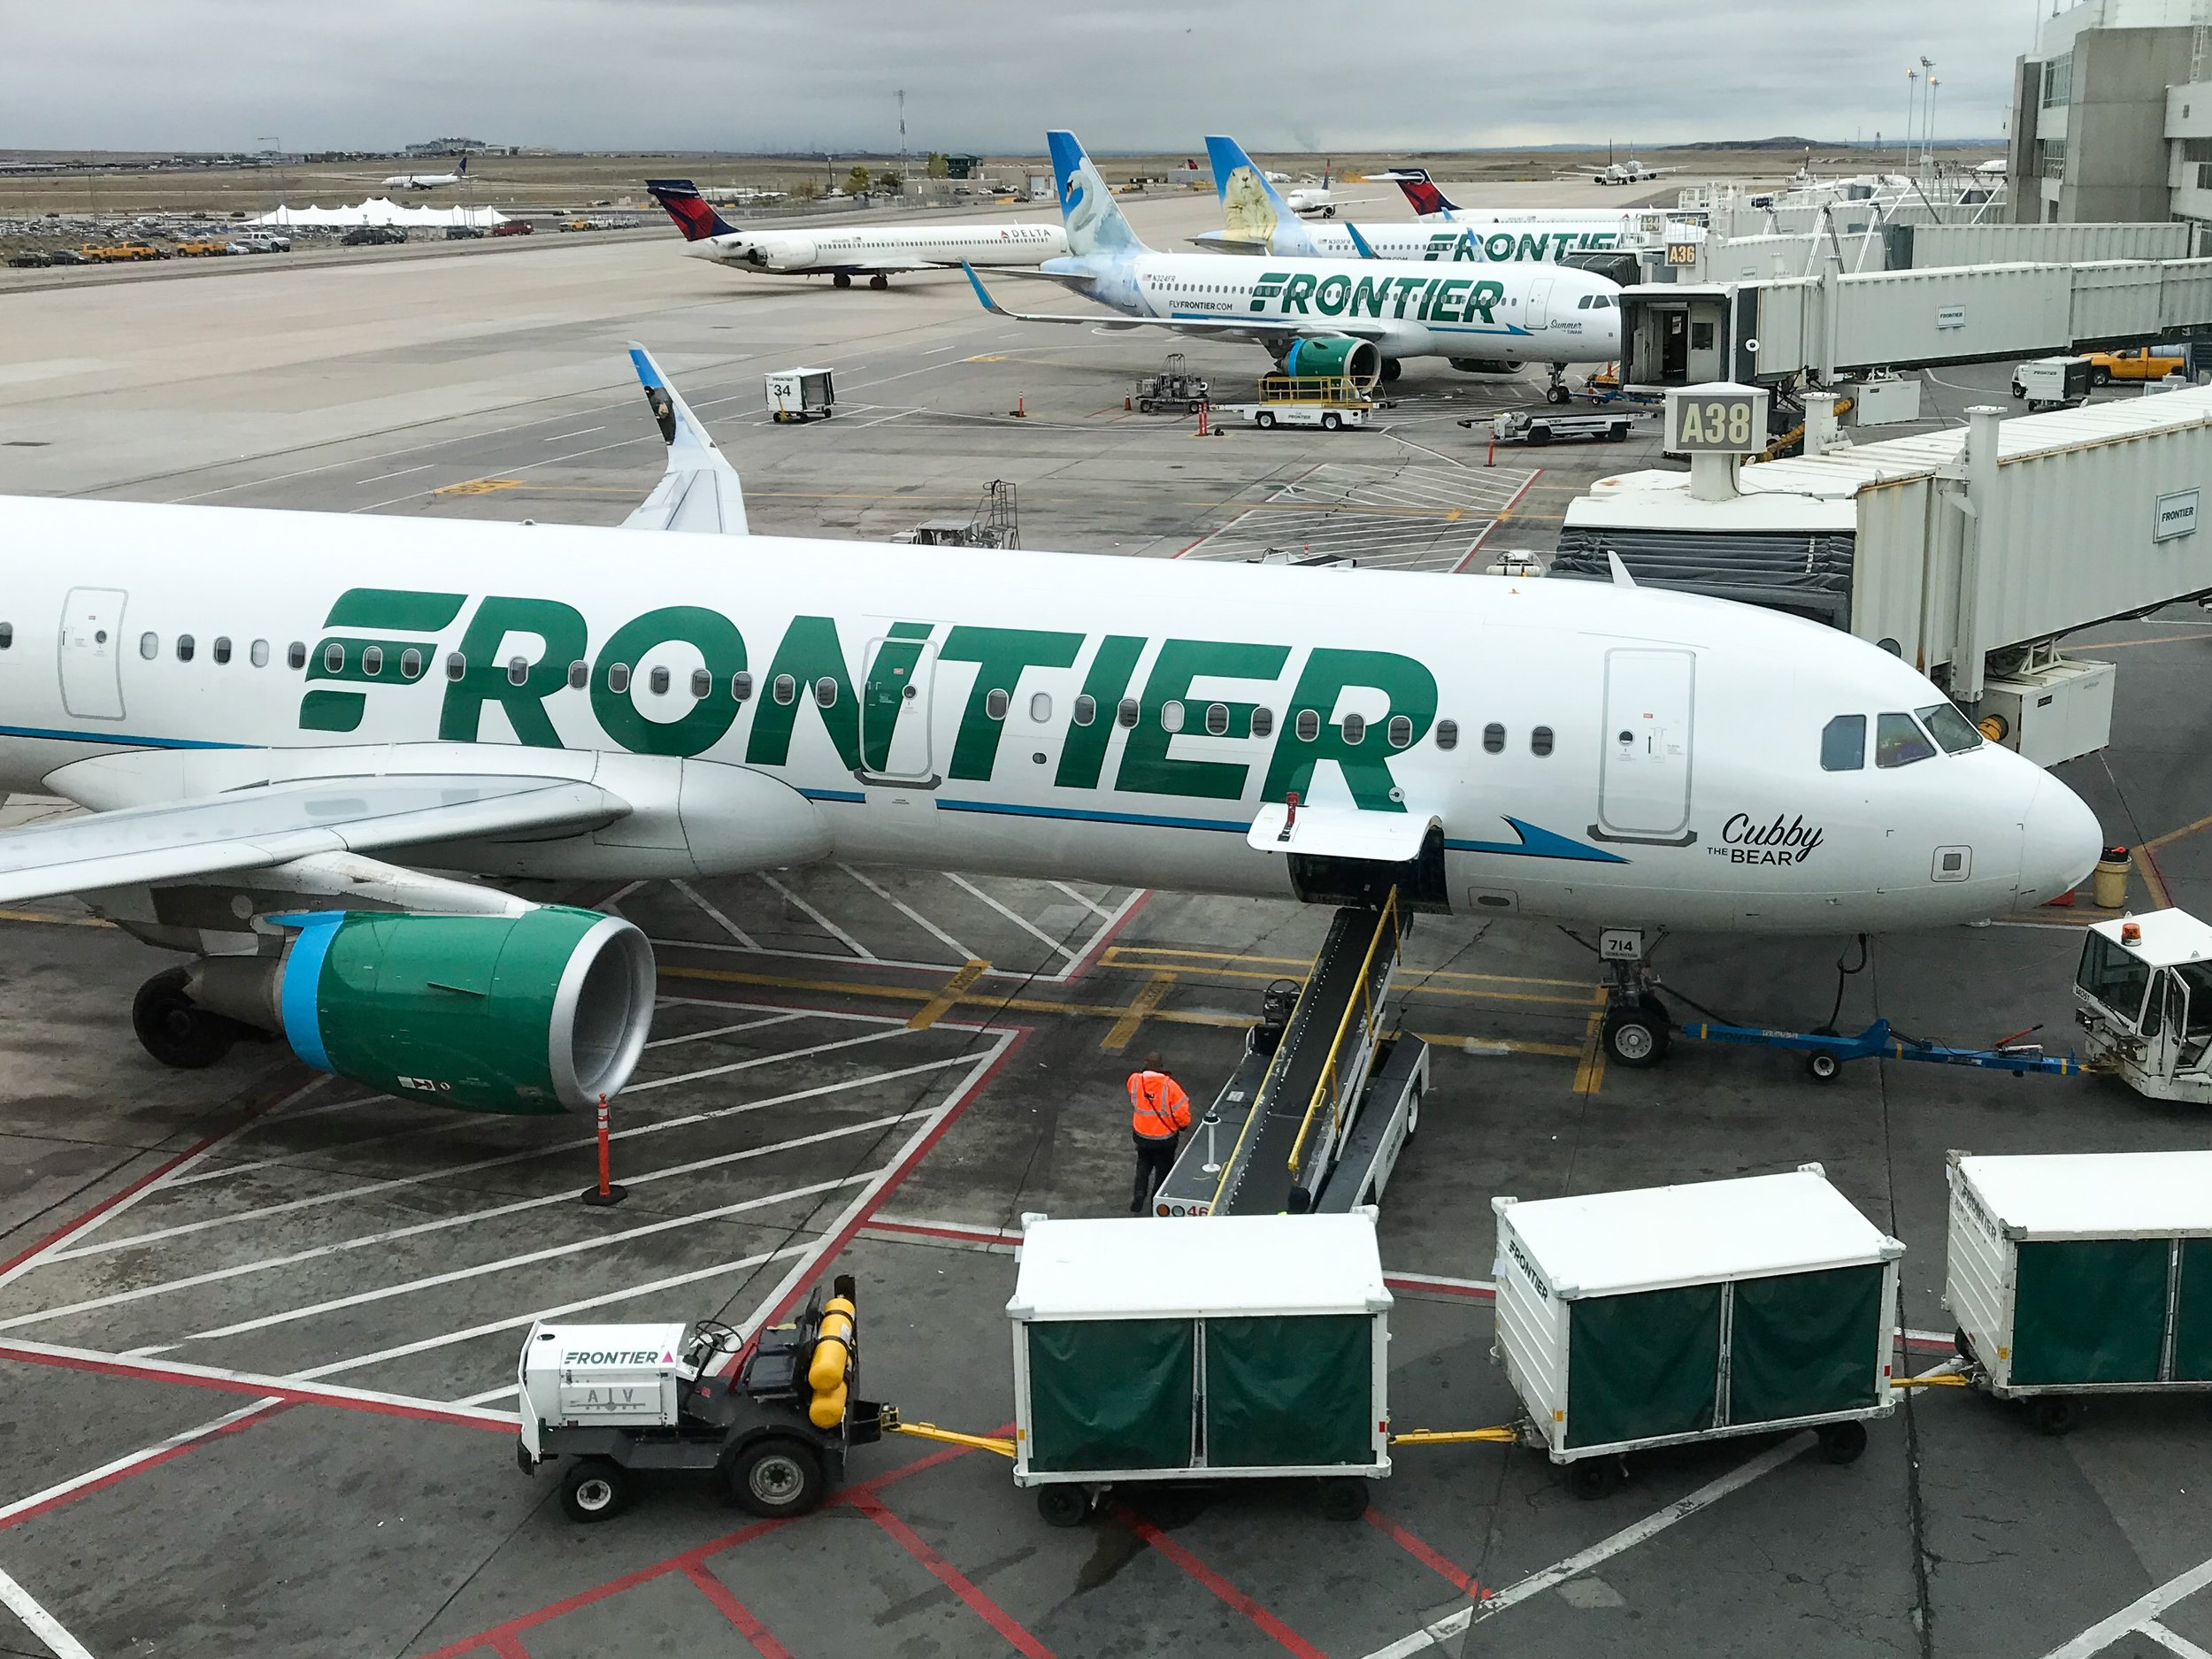 AIRCRAFT FLEET - Frontier operates a large fleet of narrow-body aircraft. Get detailed information about each plane, and see cabin and exterior photos.